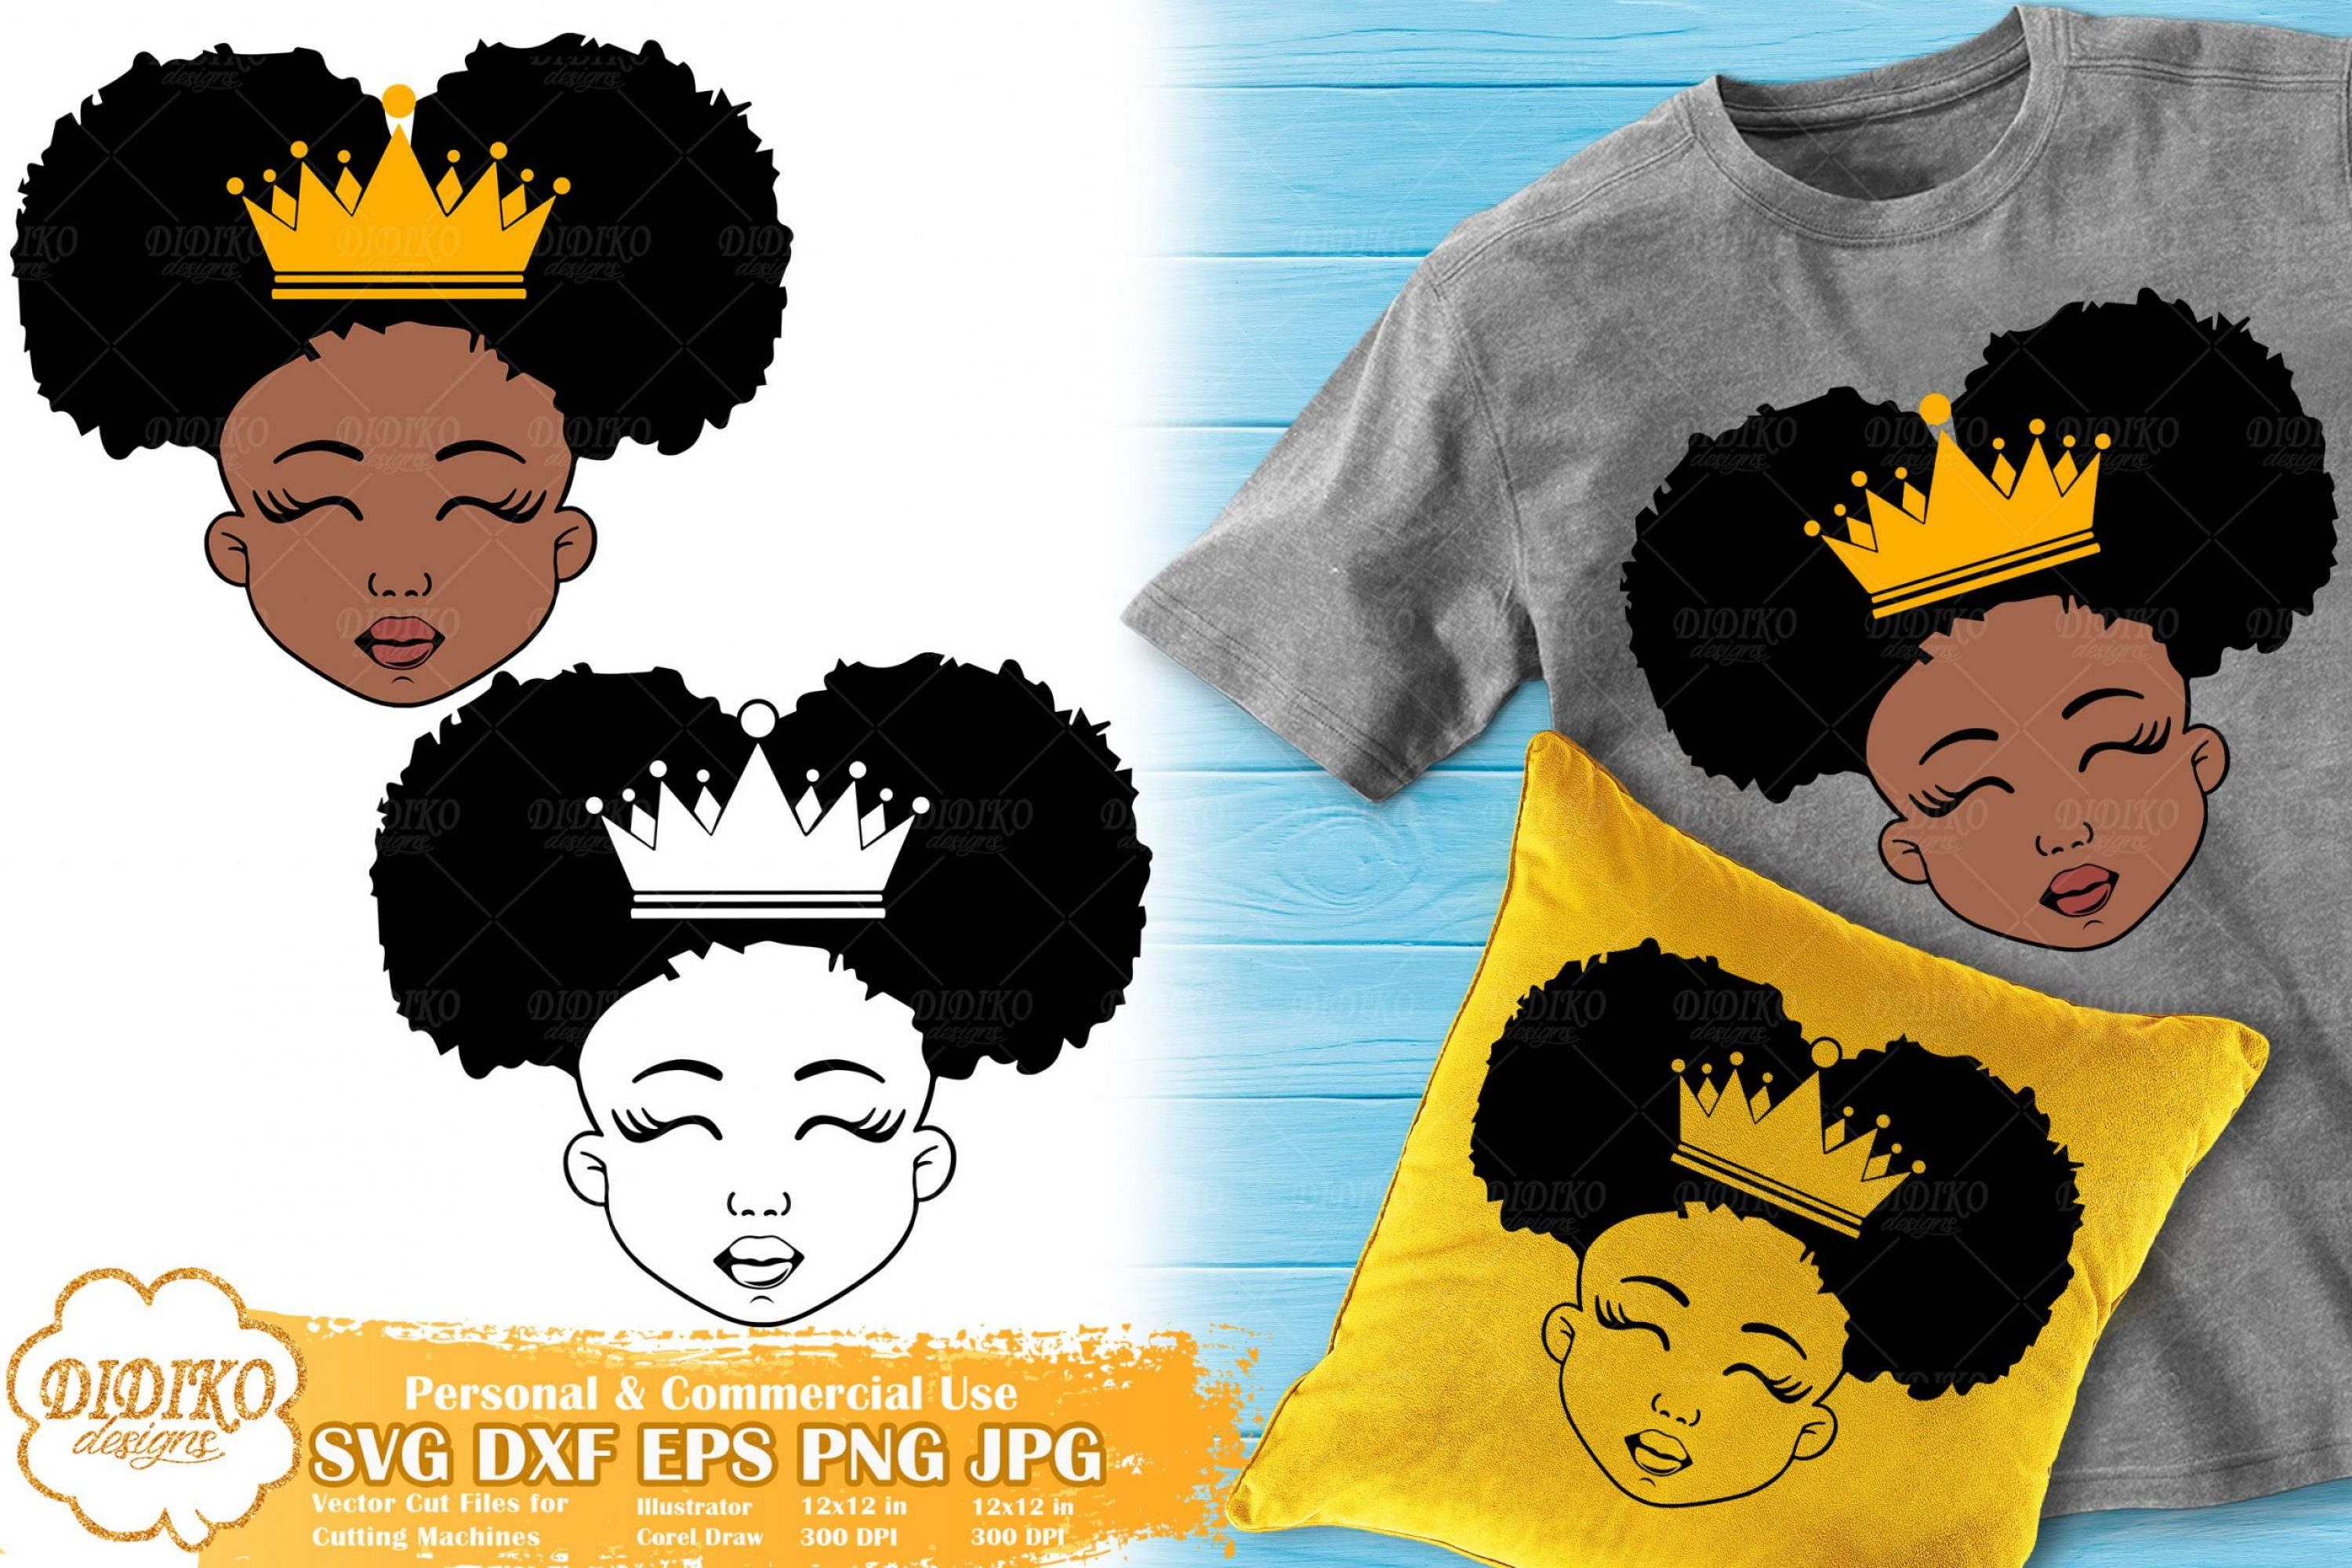 Black Princess SVG #1 | Afro Girl with Crown SVG